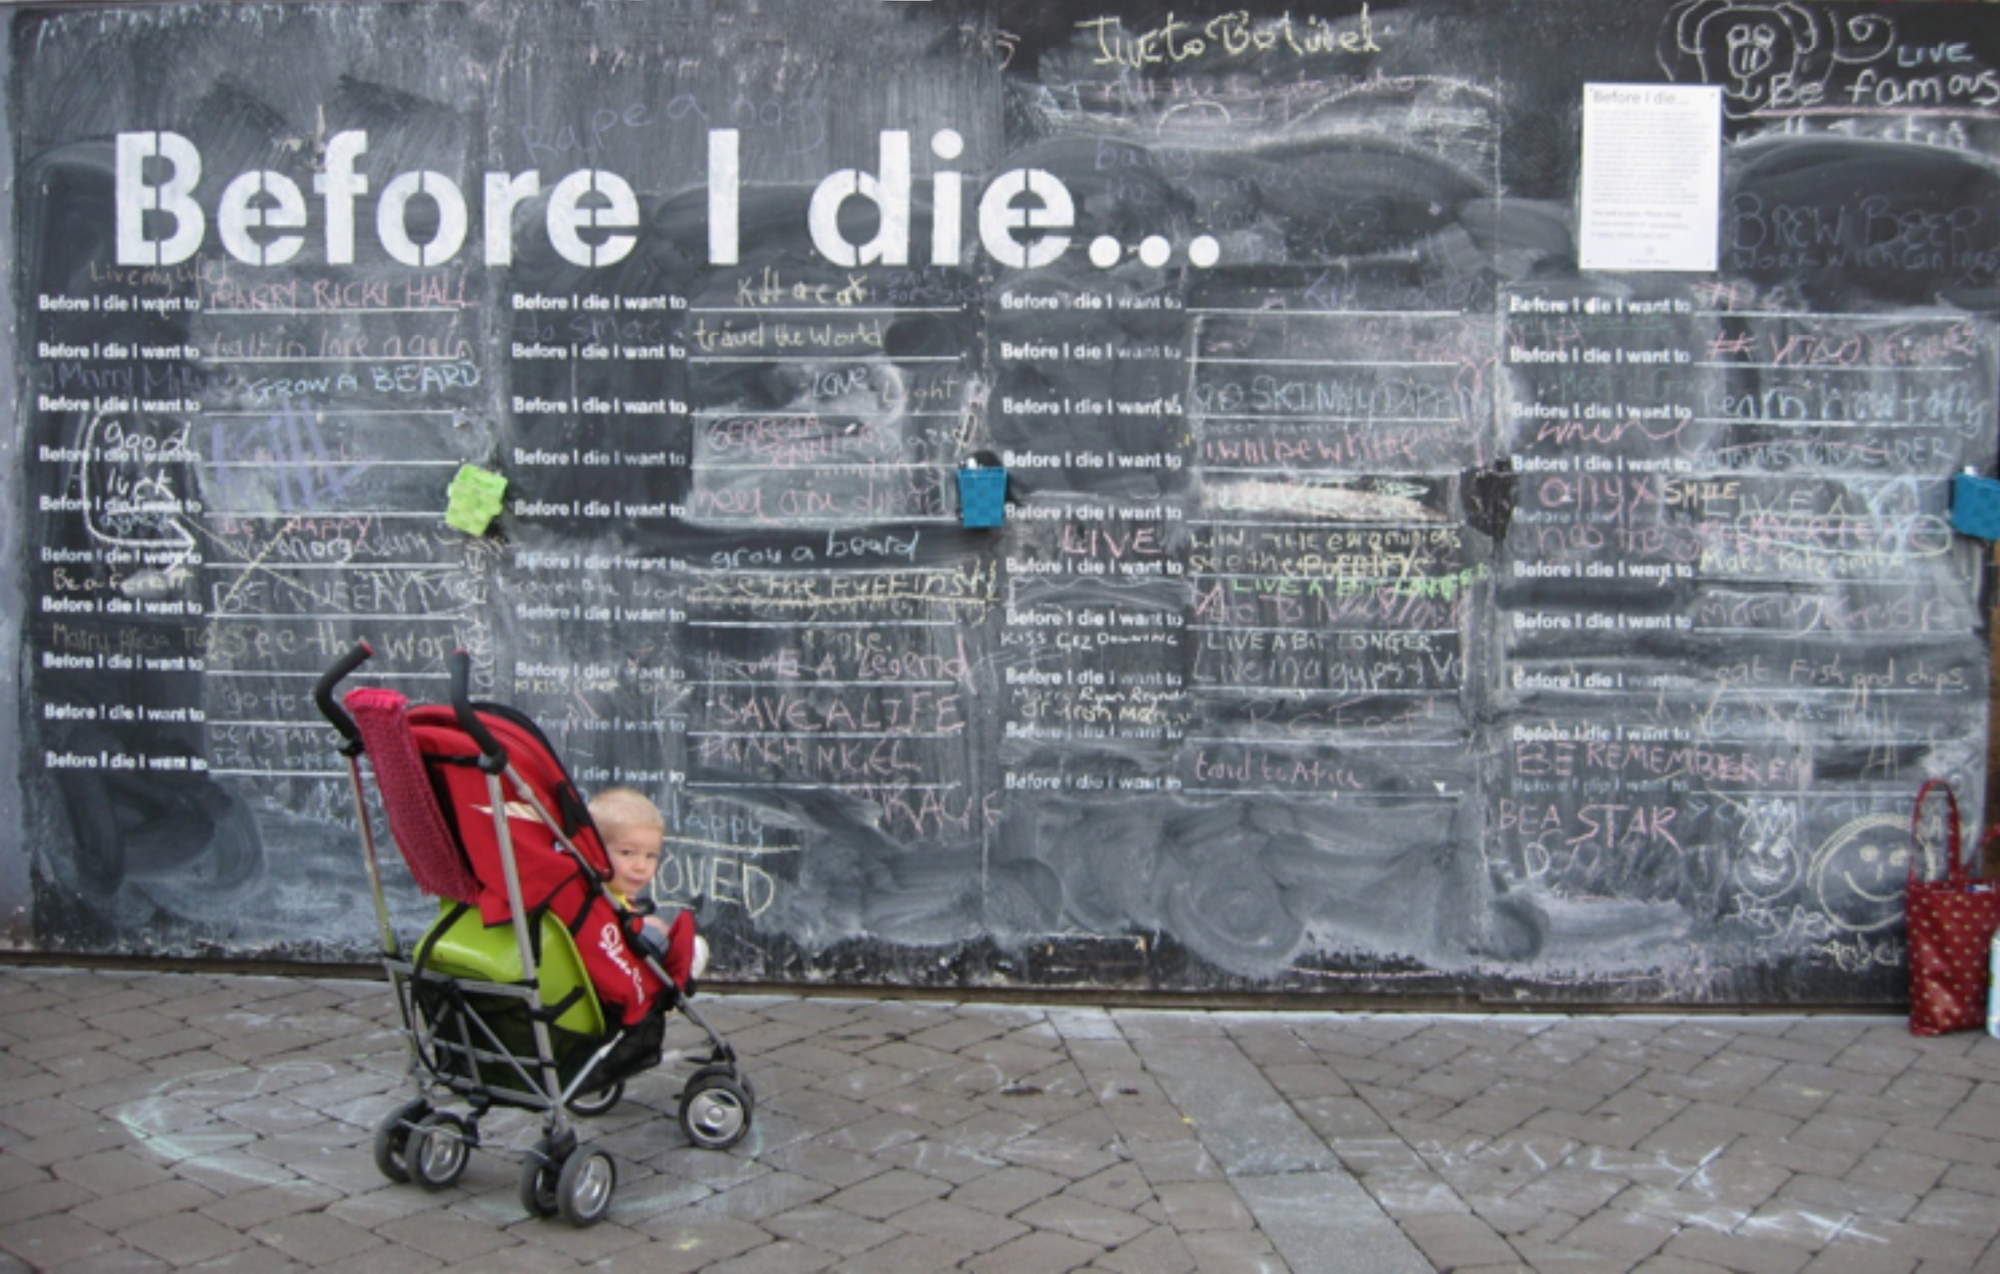 The St Michael's Hospice 'before I die' chalk boards will be in High Town later this month.